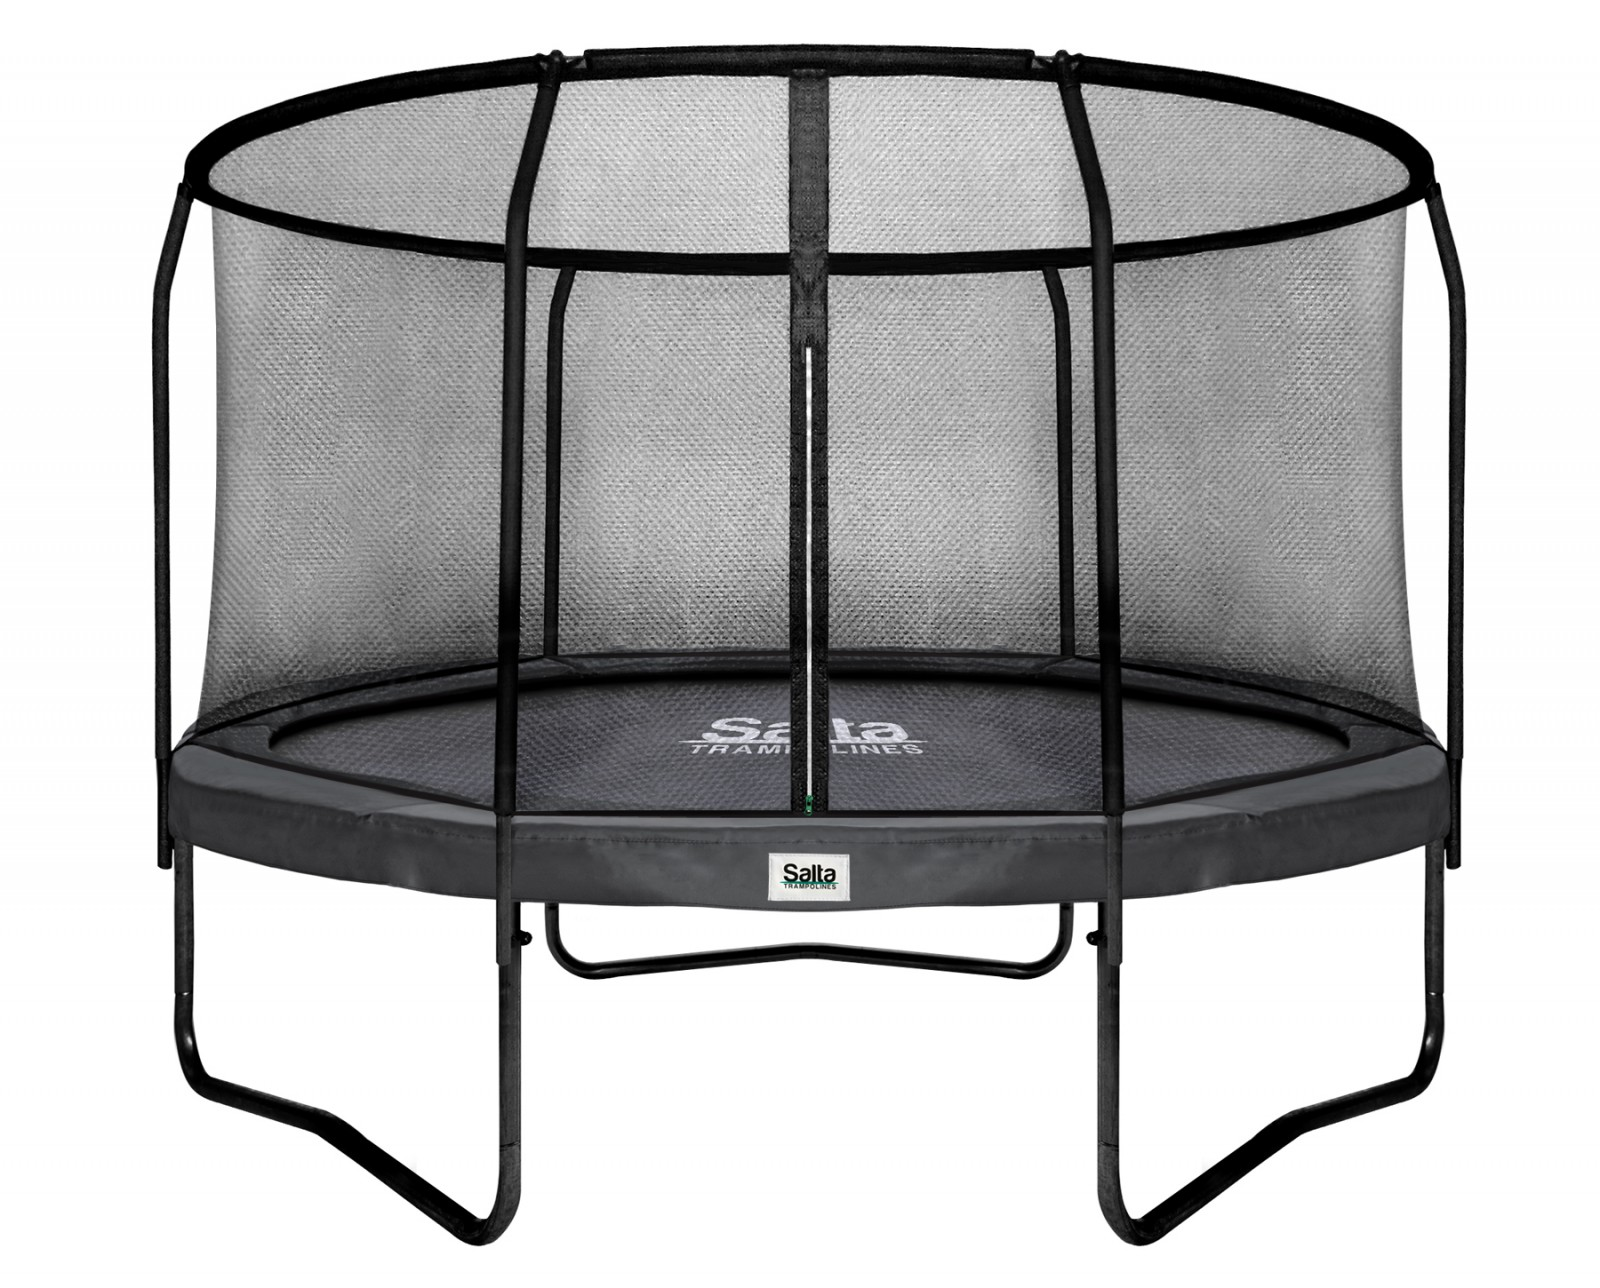 salta gartentrampolin premium black edition kaufen mit 15 kundenbewertungen sport tiedje. Black Bedroom Furniture Sets. Home Design Ideas